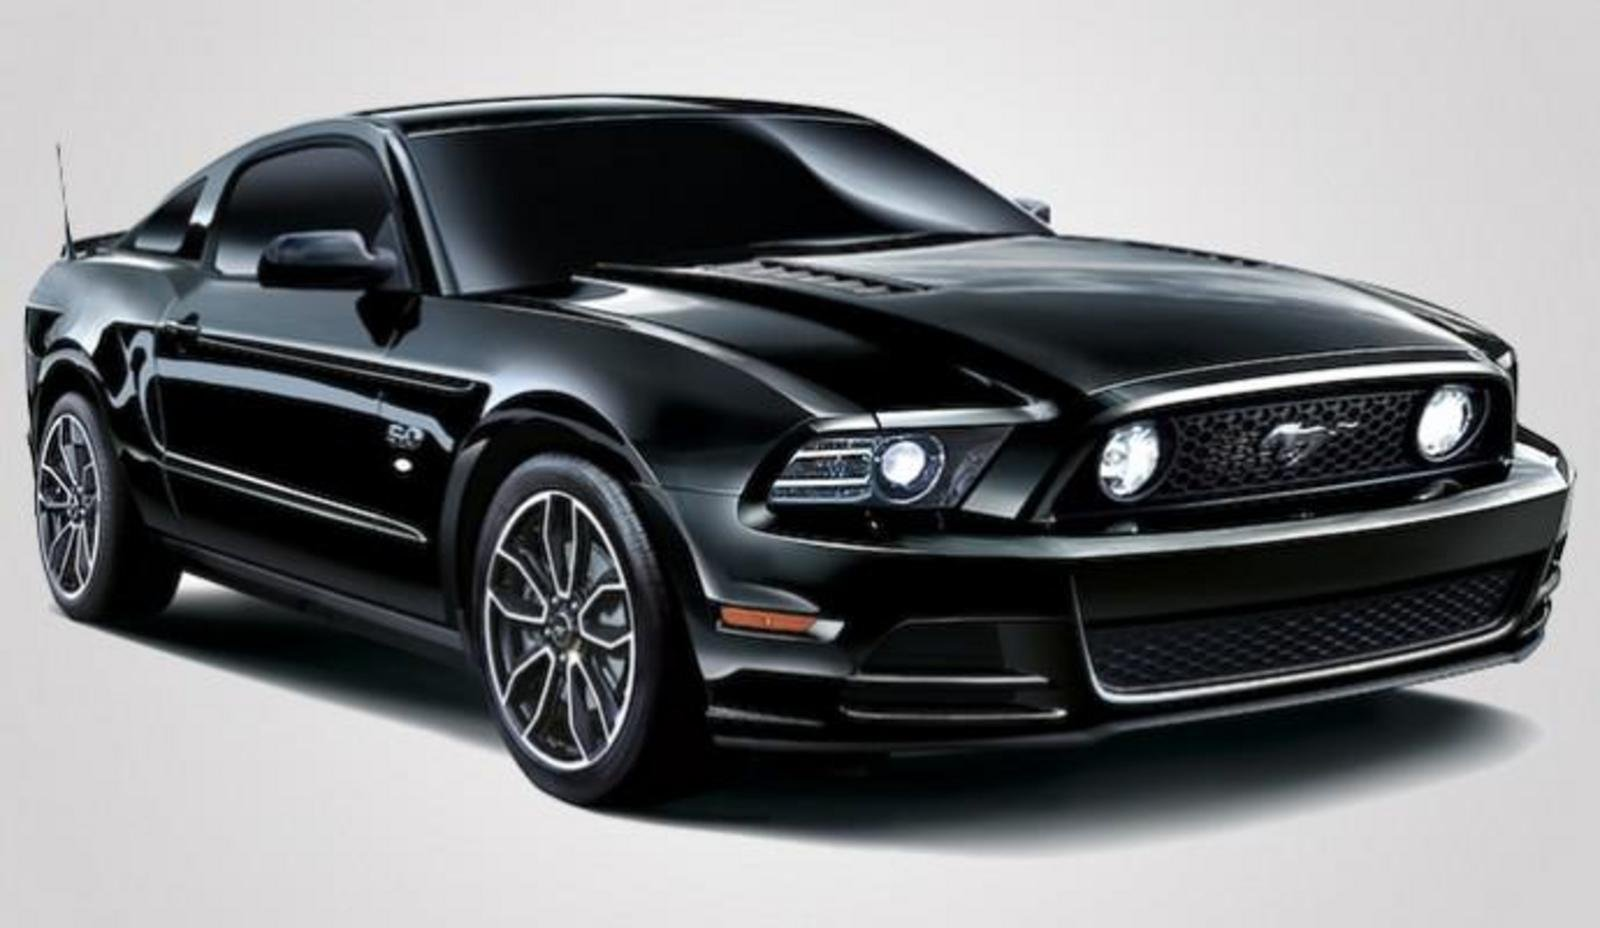 2014 ford mustang v8 gt coupe the black review top speed. Black Bedroom Furniture Sets. Home Design Ideas